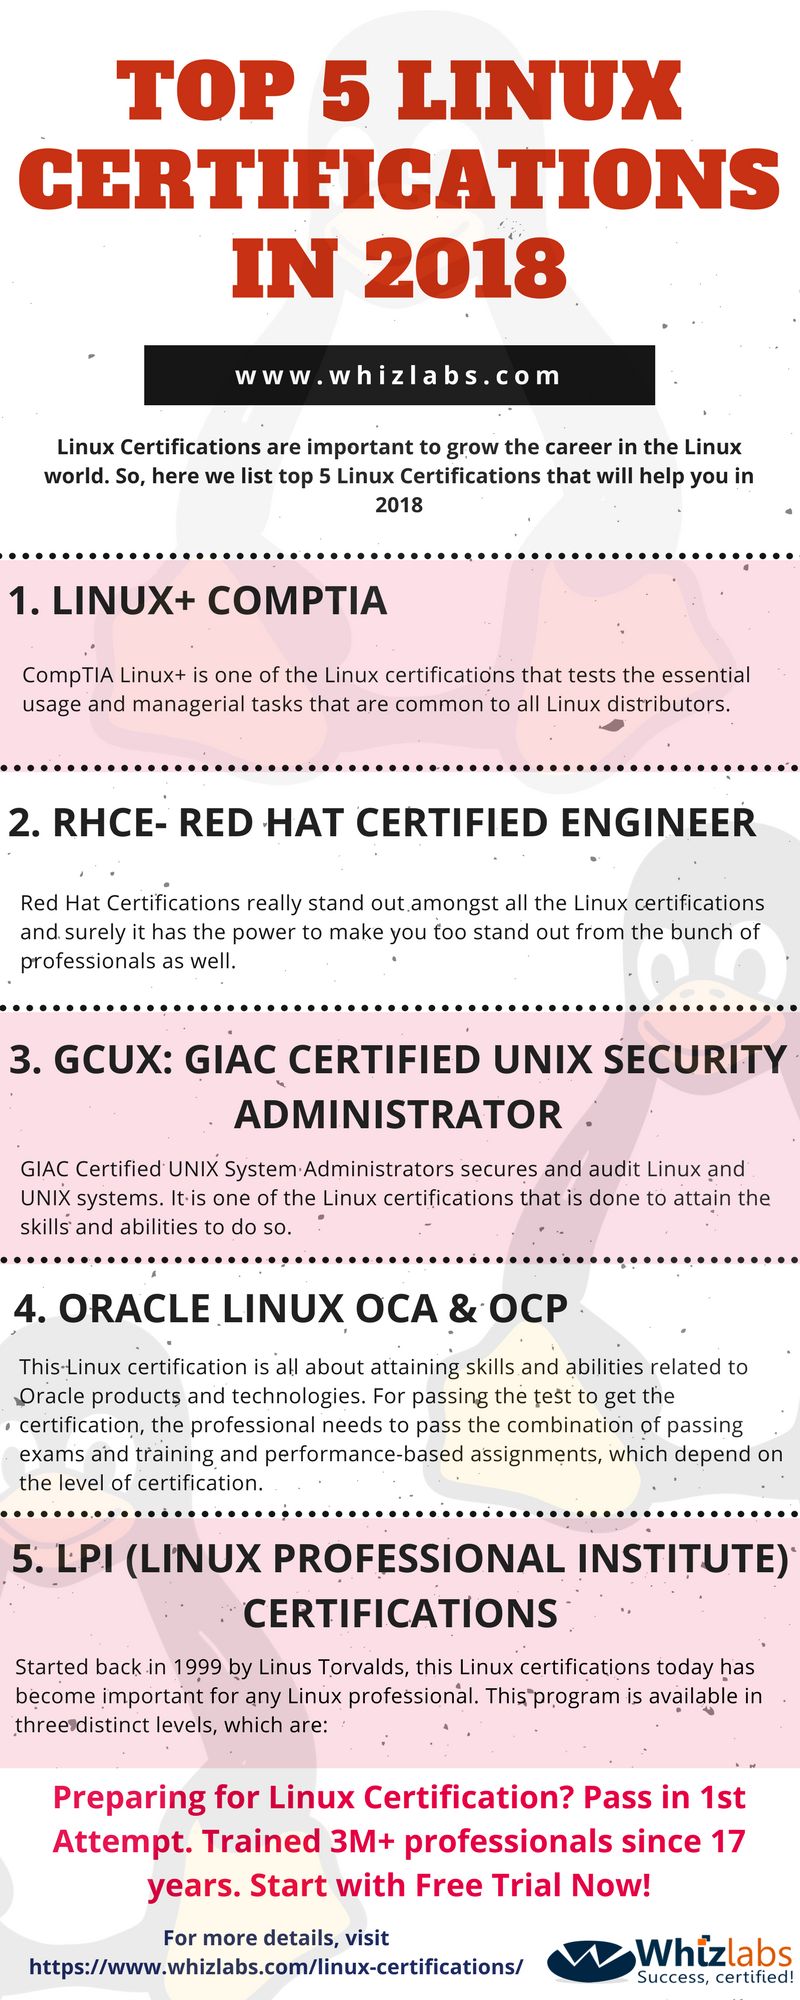 Top 5 Linux Certifications In 2018 Whizlabs Blog